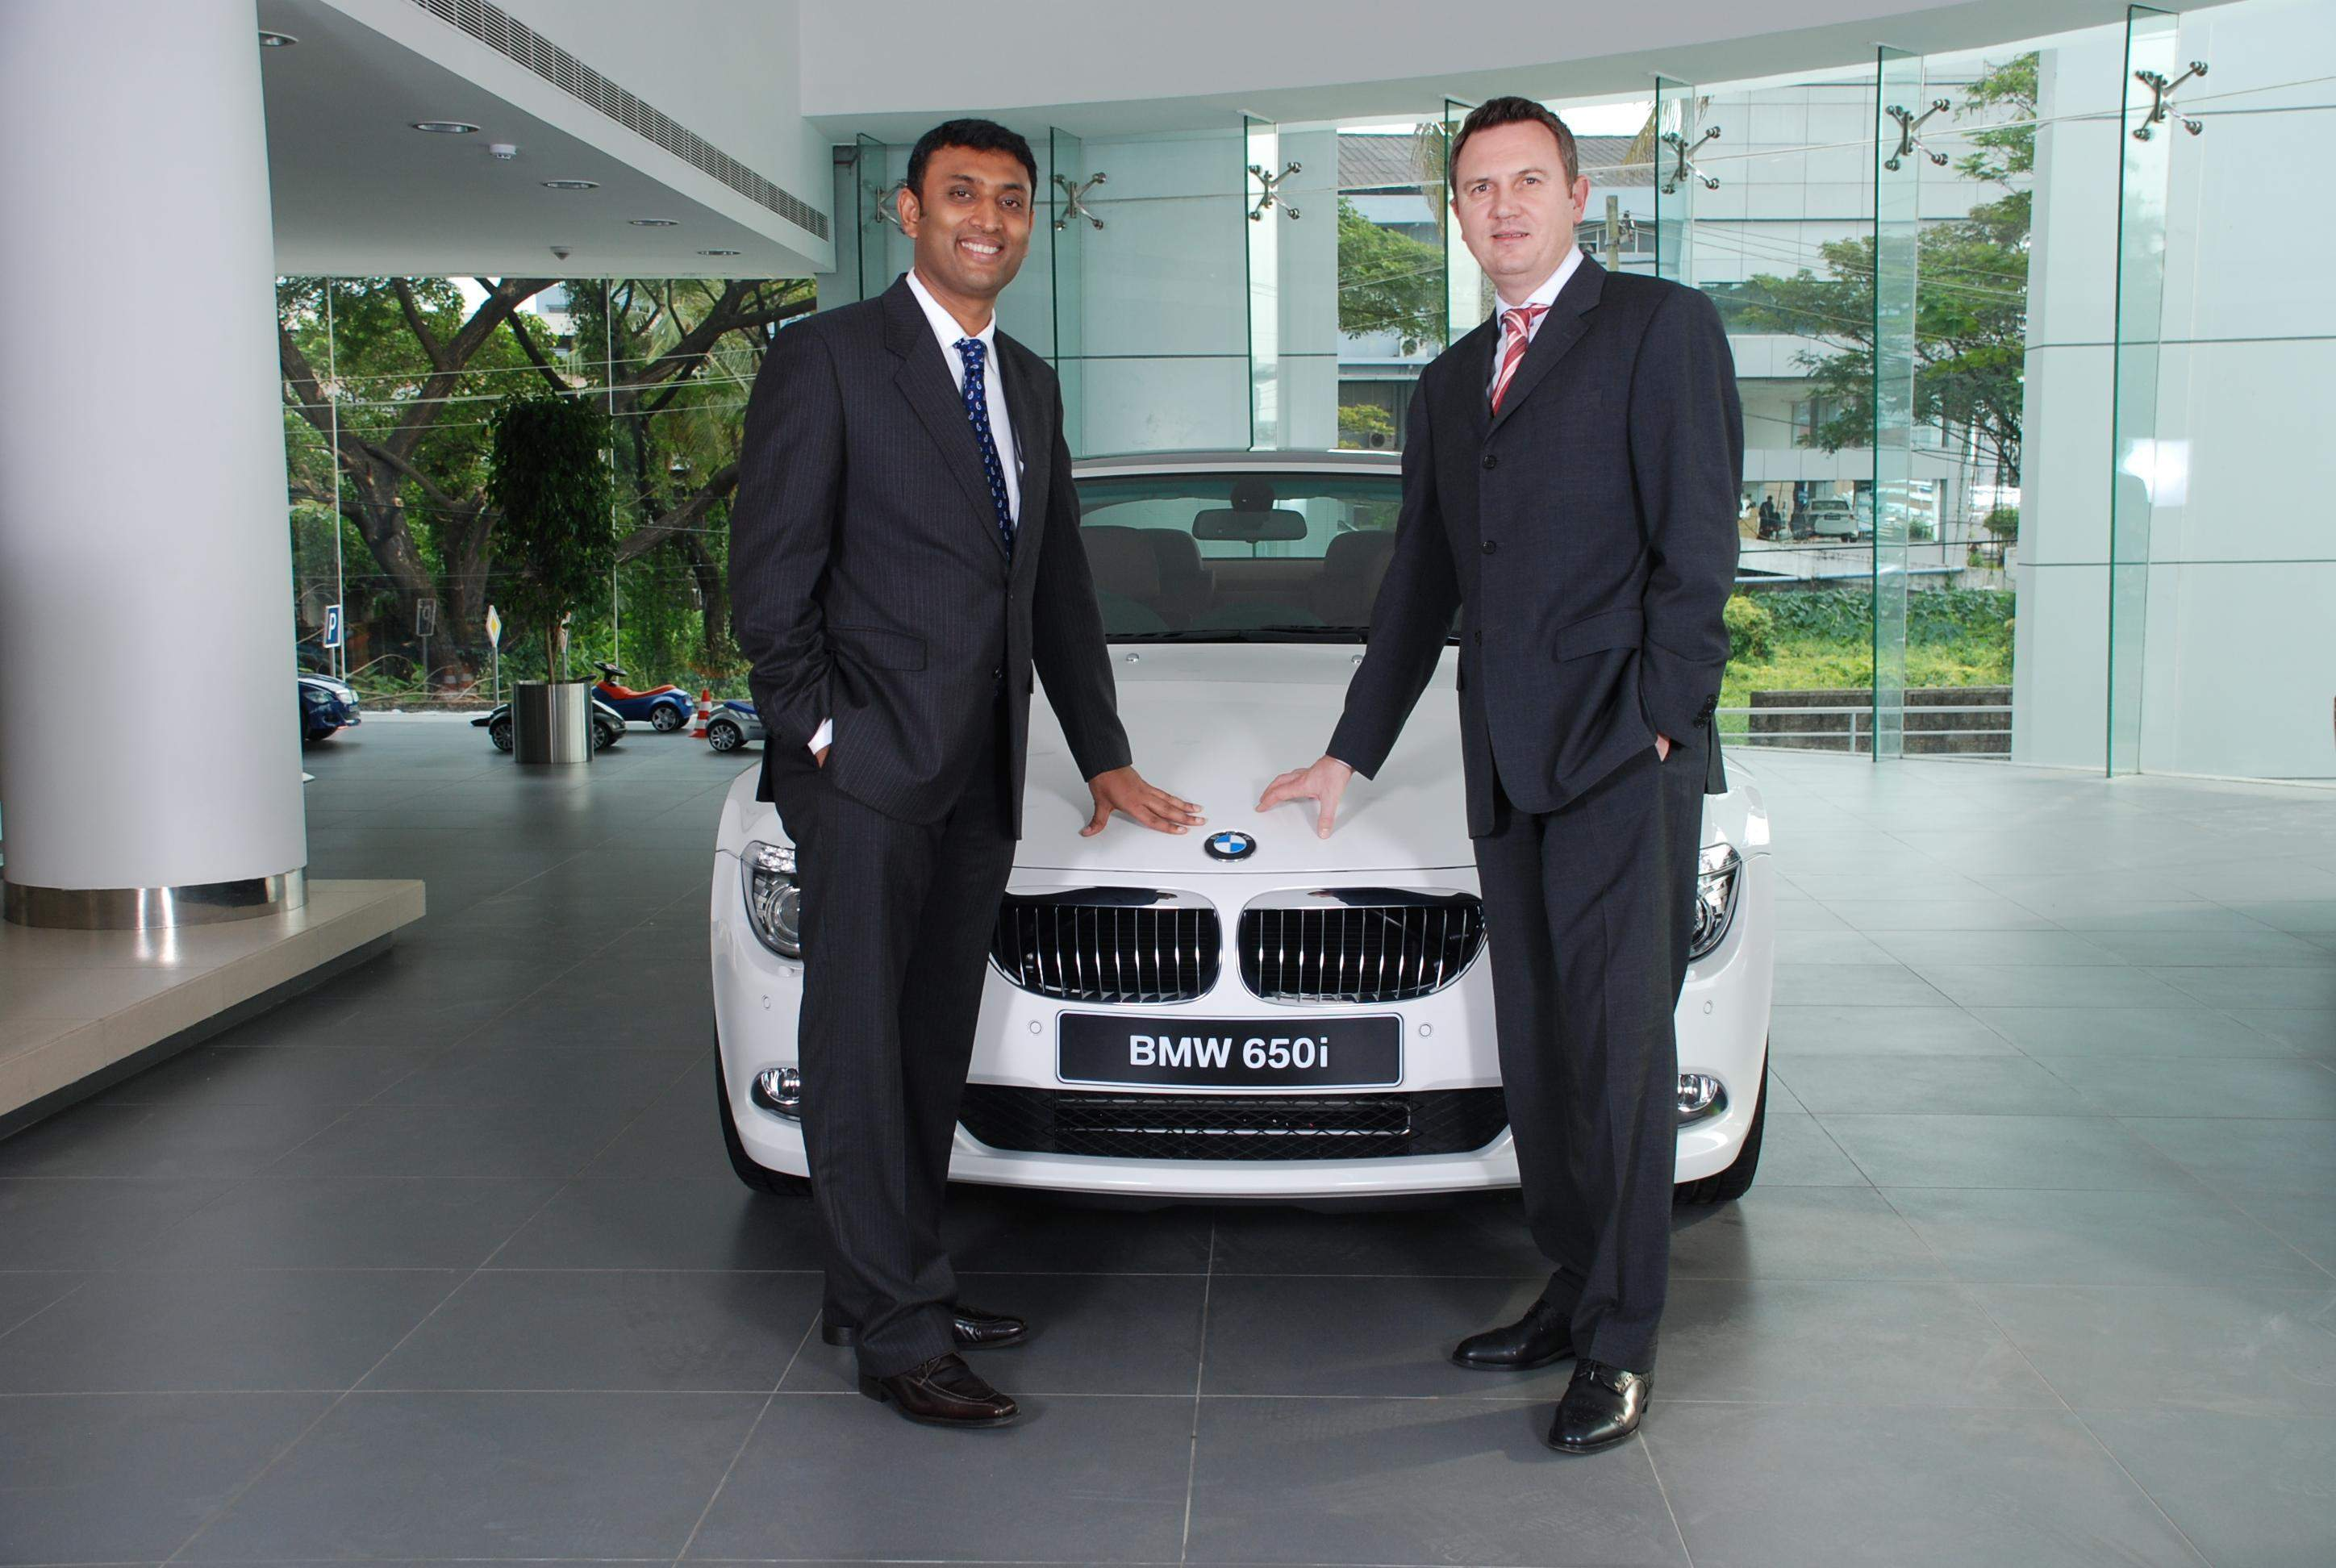 co md dealers utica weblog dc washington bmw ny dealership in new autos area of cuponcity